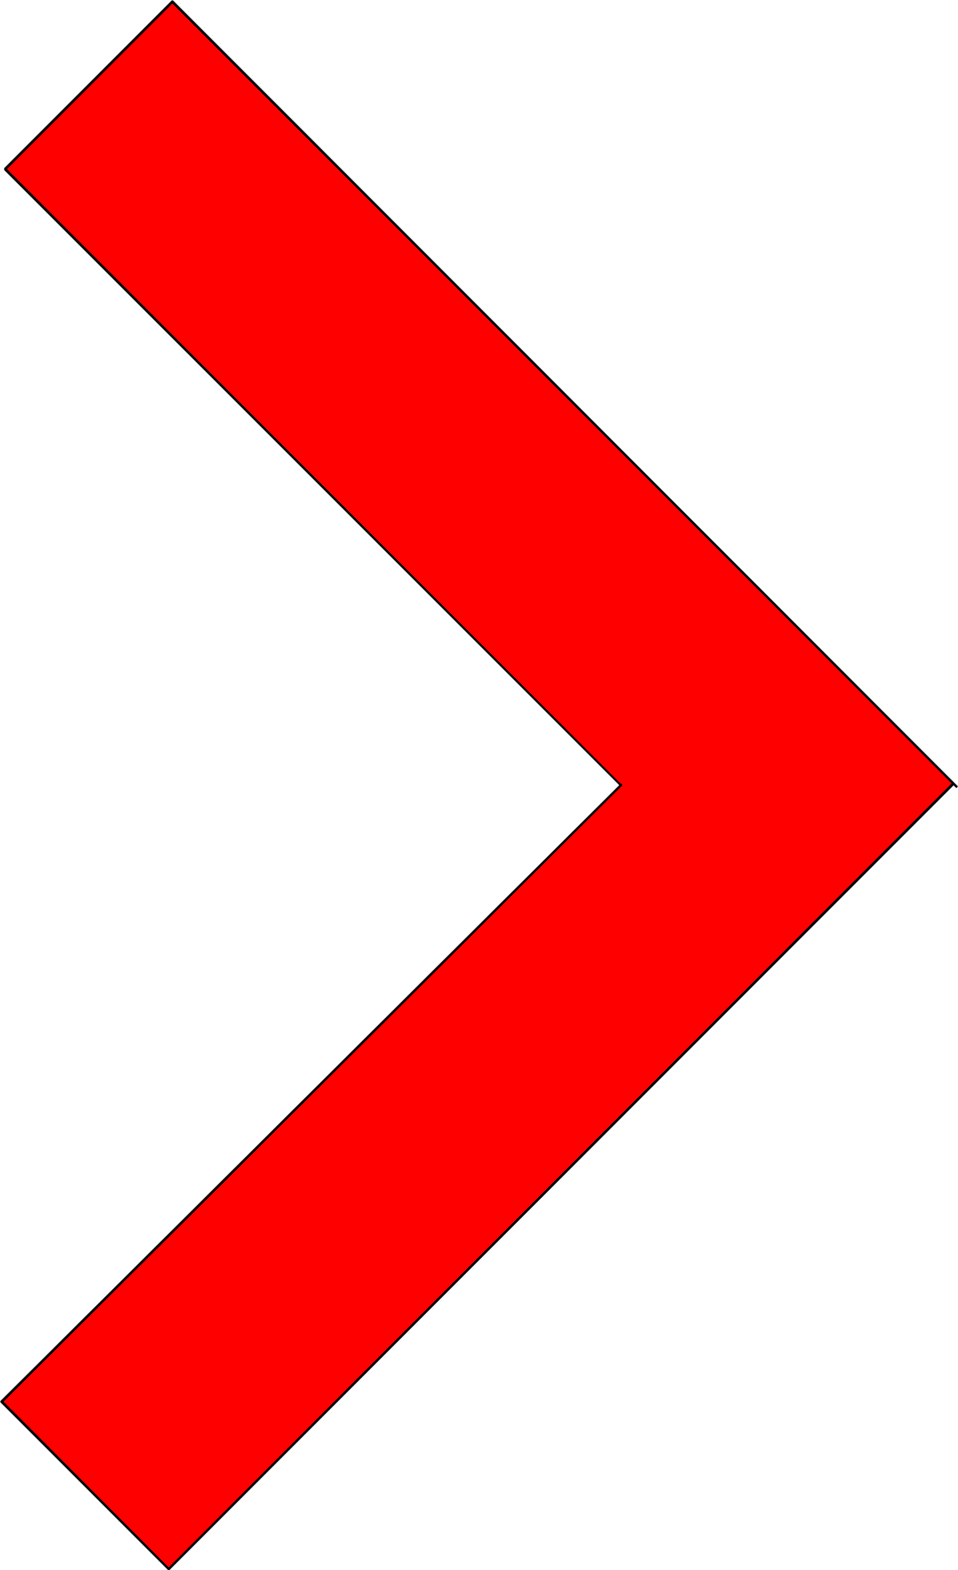 Image result for red arrow no background